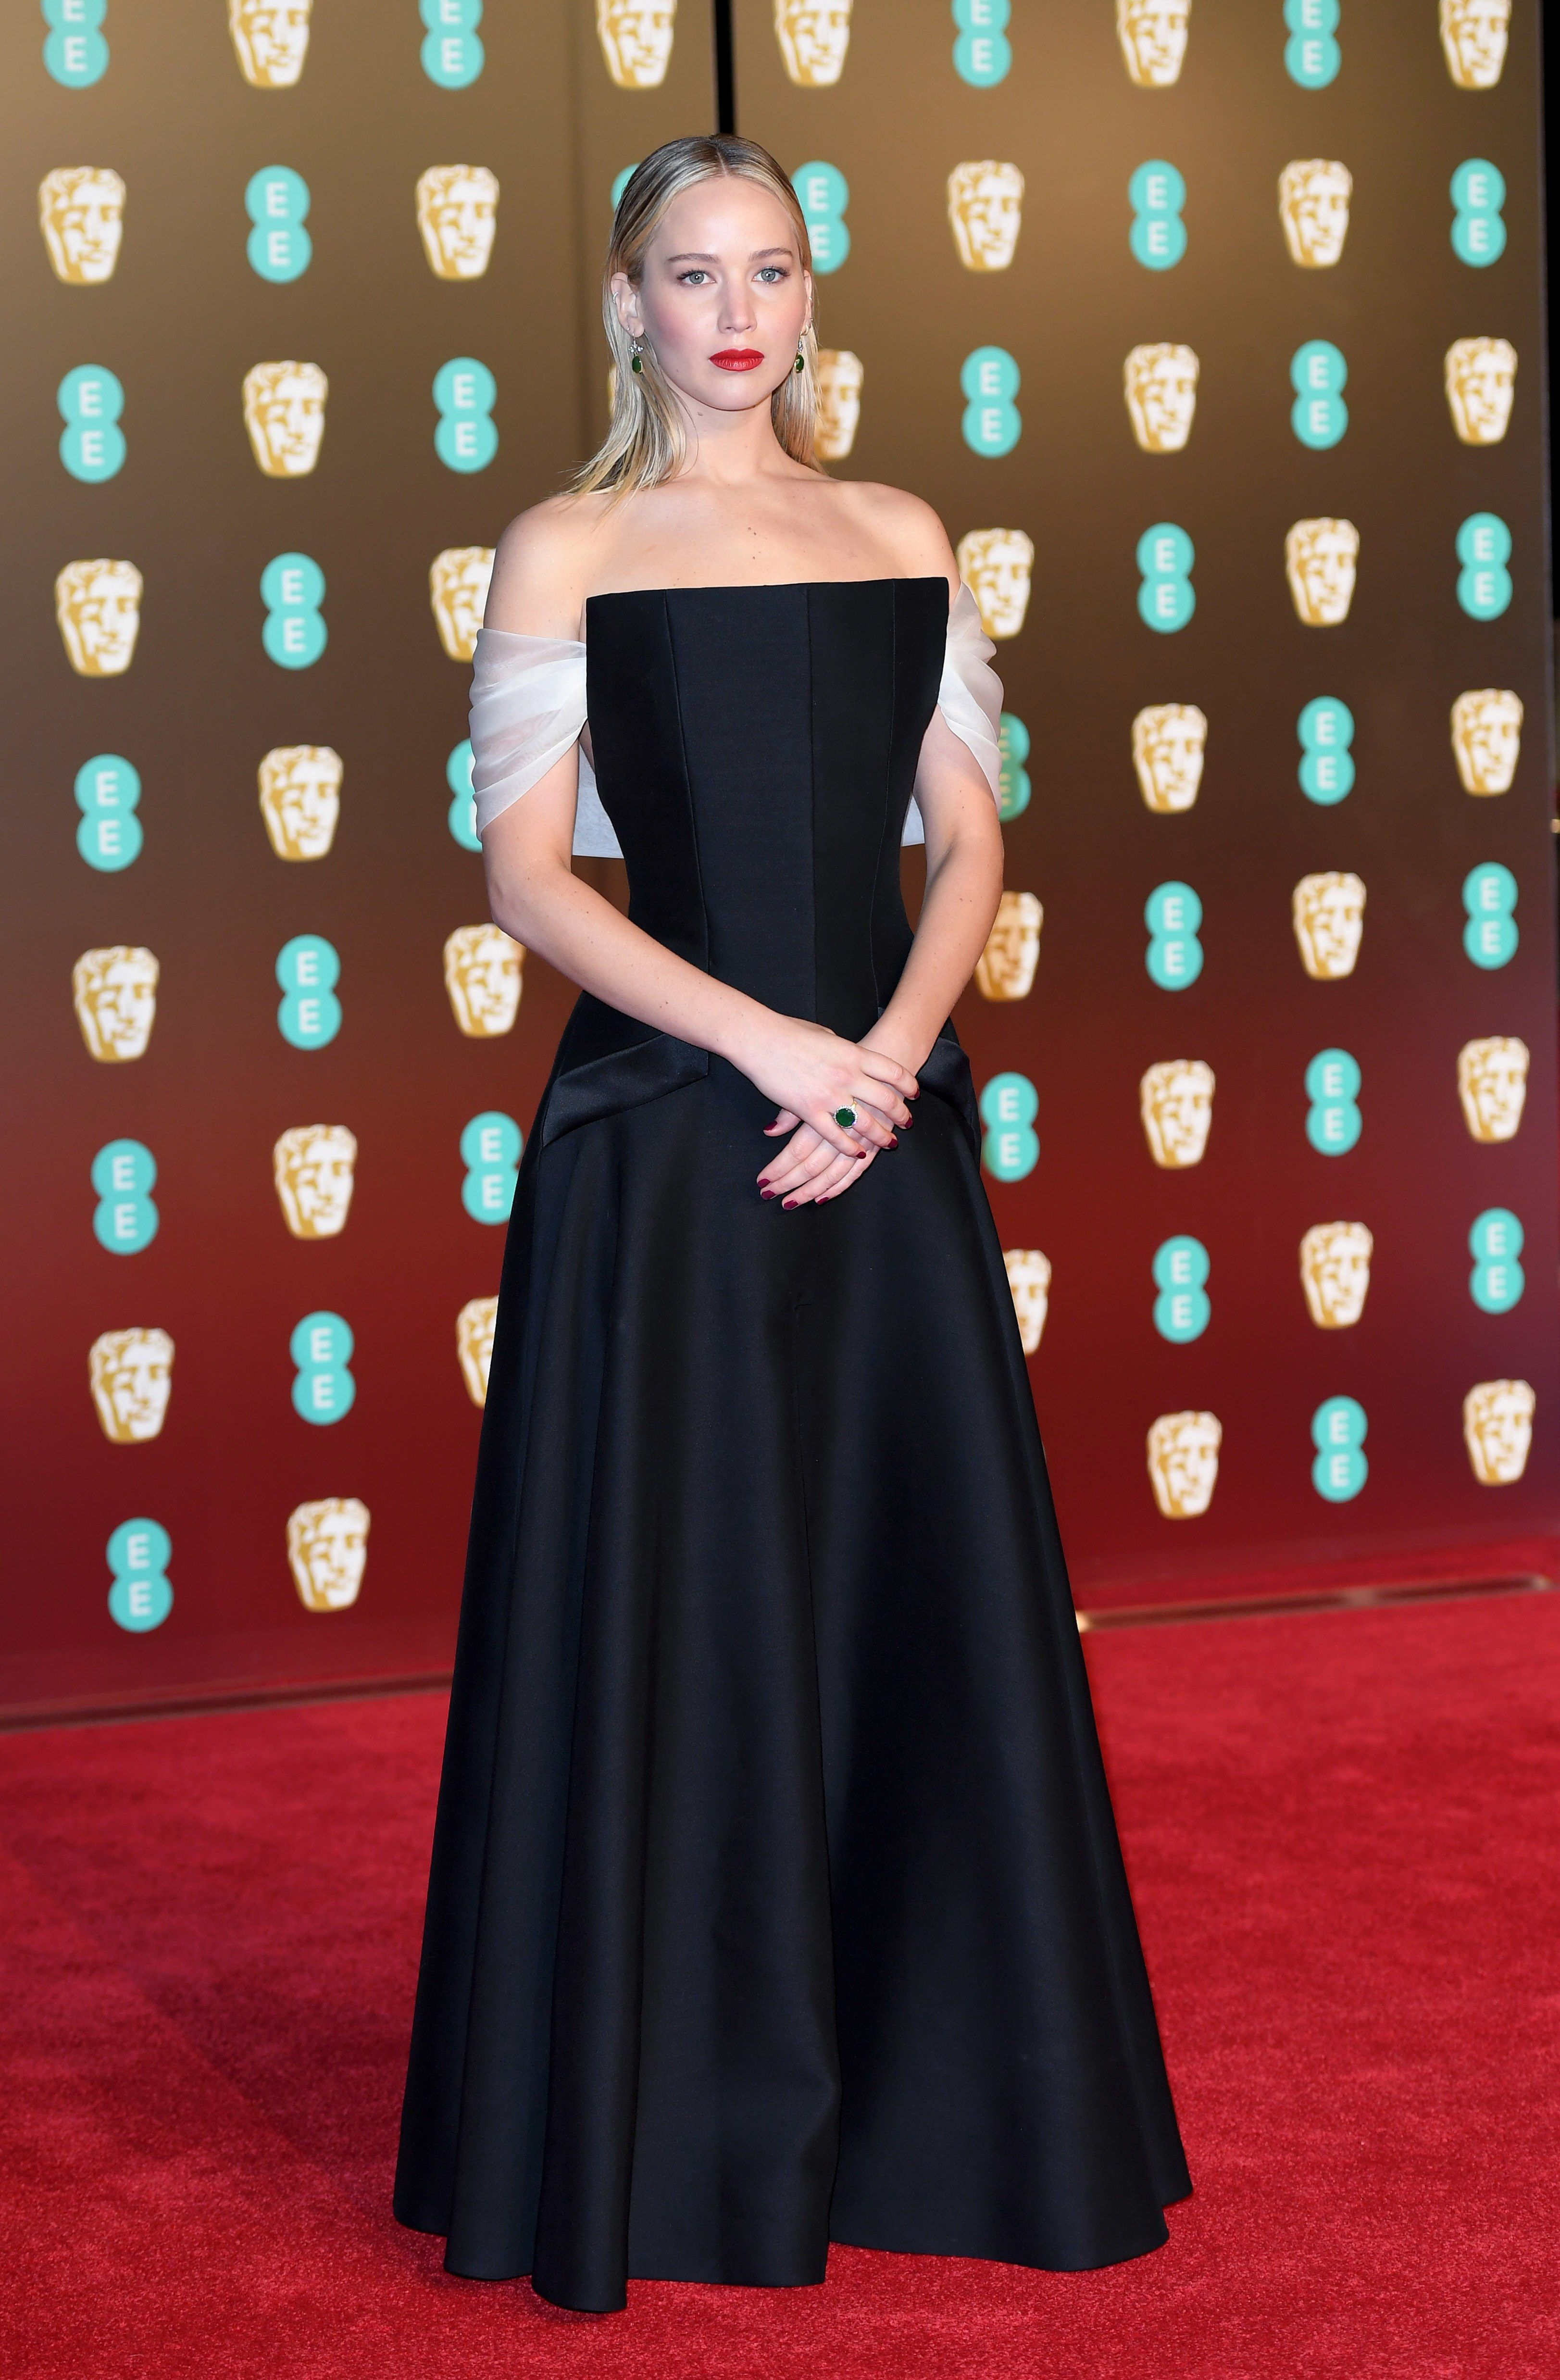 Bafta Red Carpet 2018 See Jennifer Lawrence Angelina Jolie And More Actresses In Black Dresses Celebrity Style